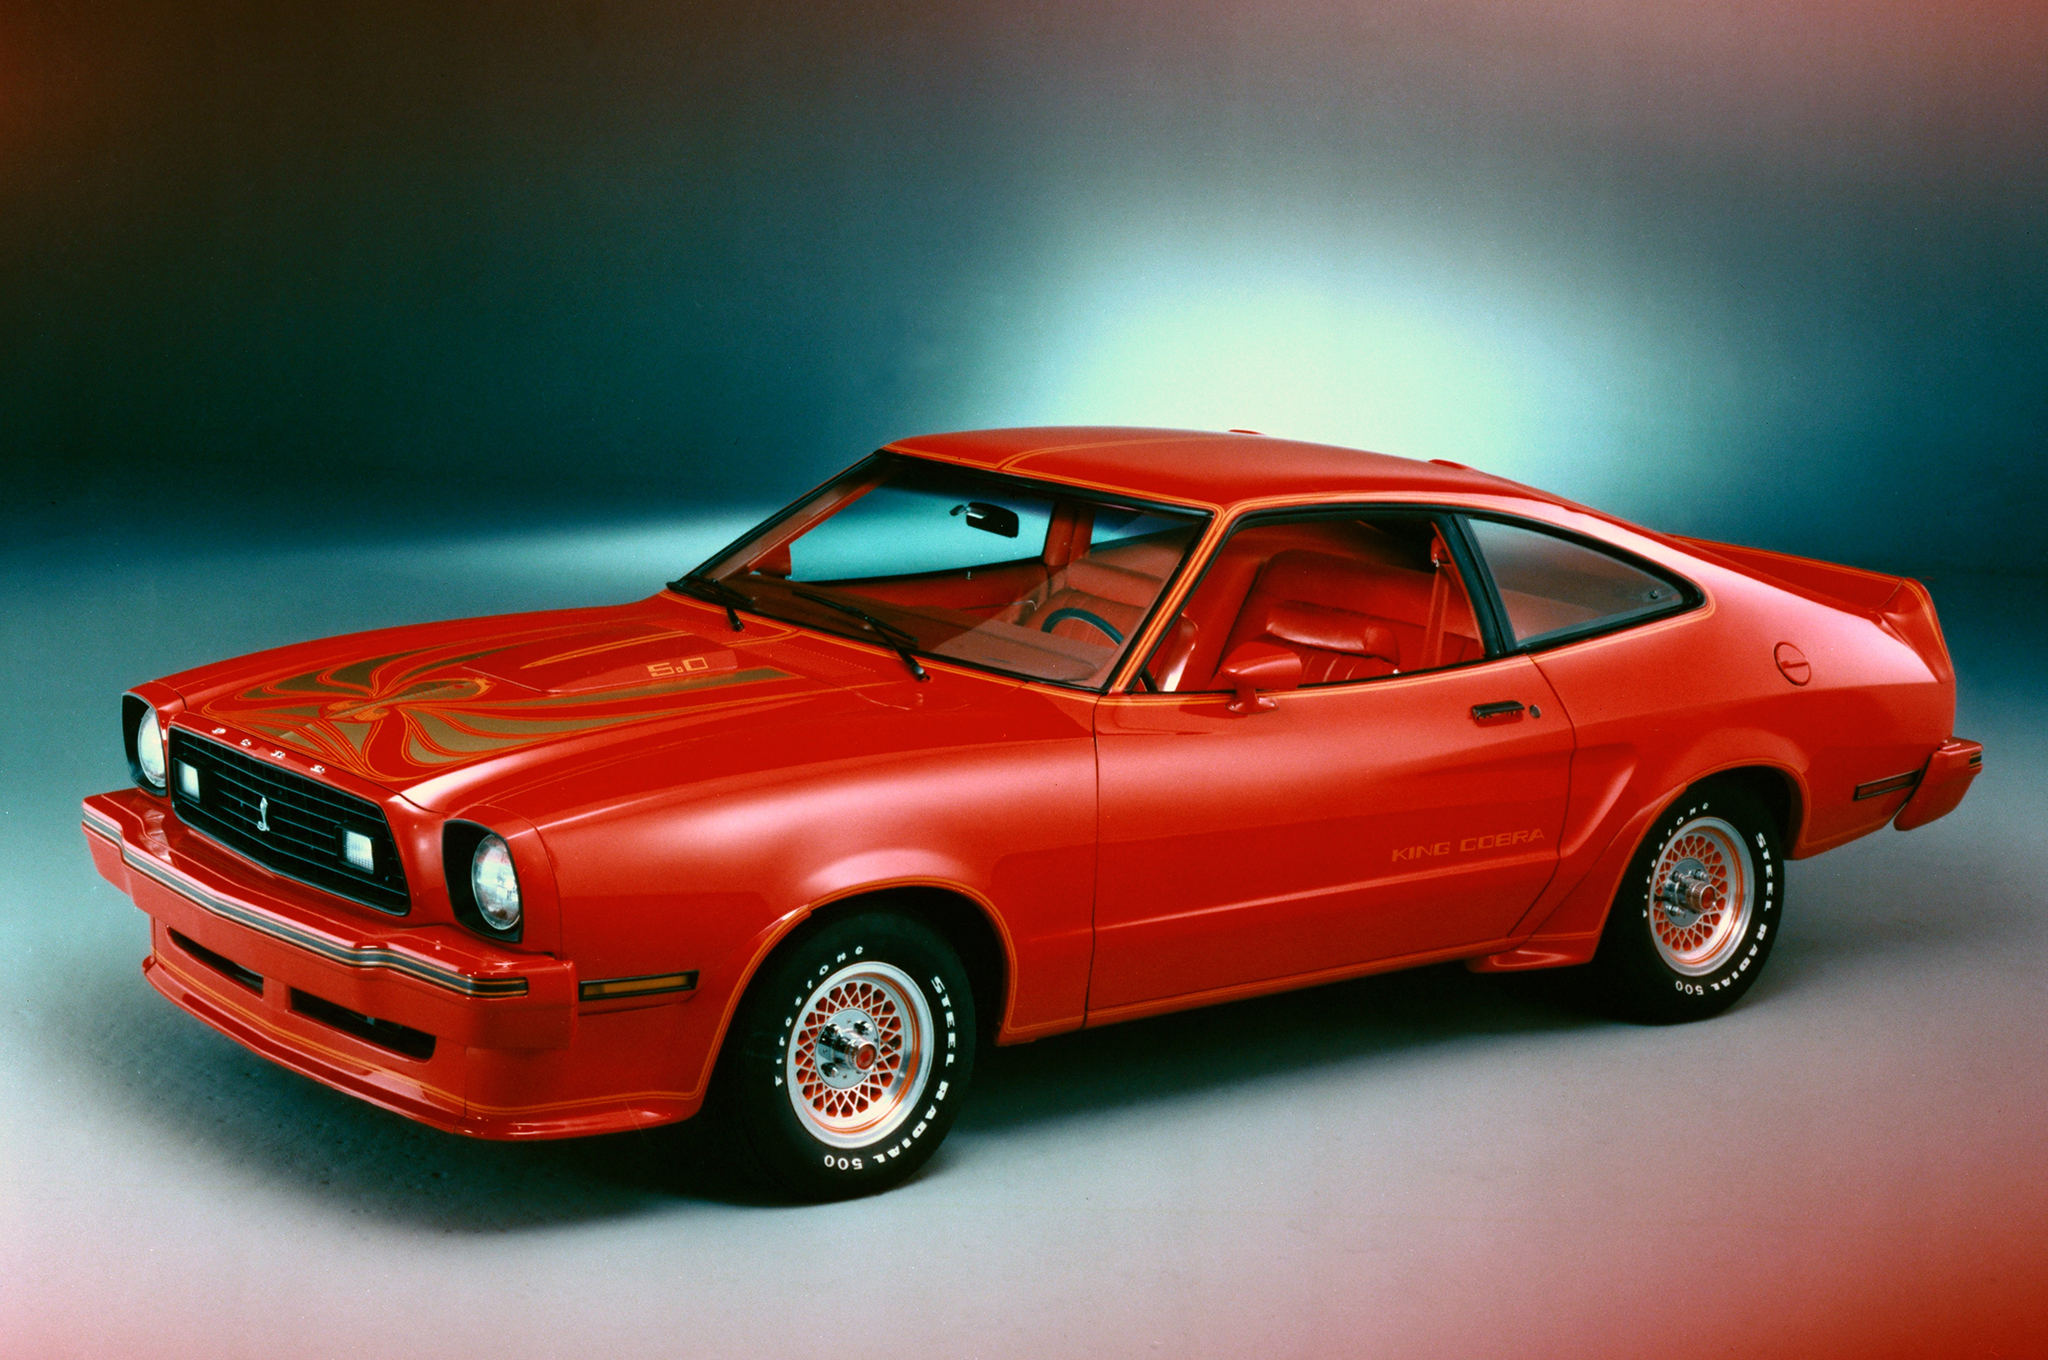 In an effort to spike Mustang sales, Ford conceived the 1978 King Cobra, which was surely a cut above Cobra II. King Cobra was decked out with a front air dam and groovy hood graphics along with a scoop just to make sure the performance message was delivered. There were also suspension improvements to punctuate the message. The best Ford could come up with was 134 hp from the 302ci V-8.We like the lacy spoke wheels, white letter tires, slippery body, heavy-duty suspension, and the King Cobra's hot demeanor. Ford sold 4,318 King Cobras early in 1978, which were priced at $5,638.